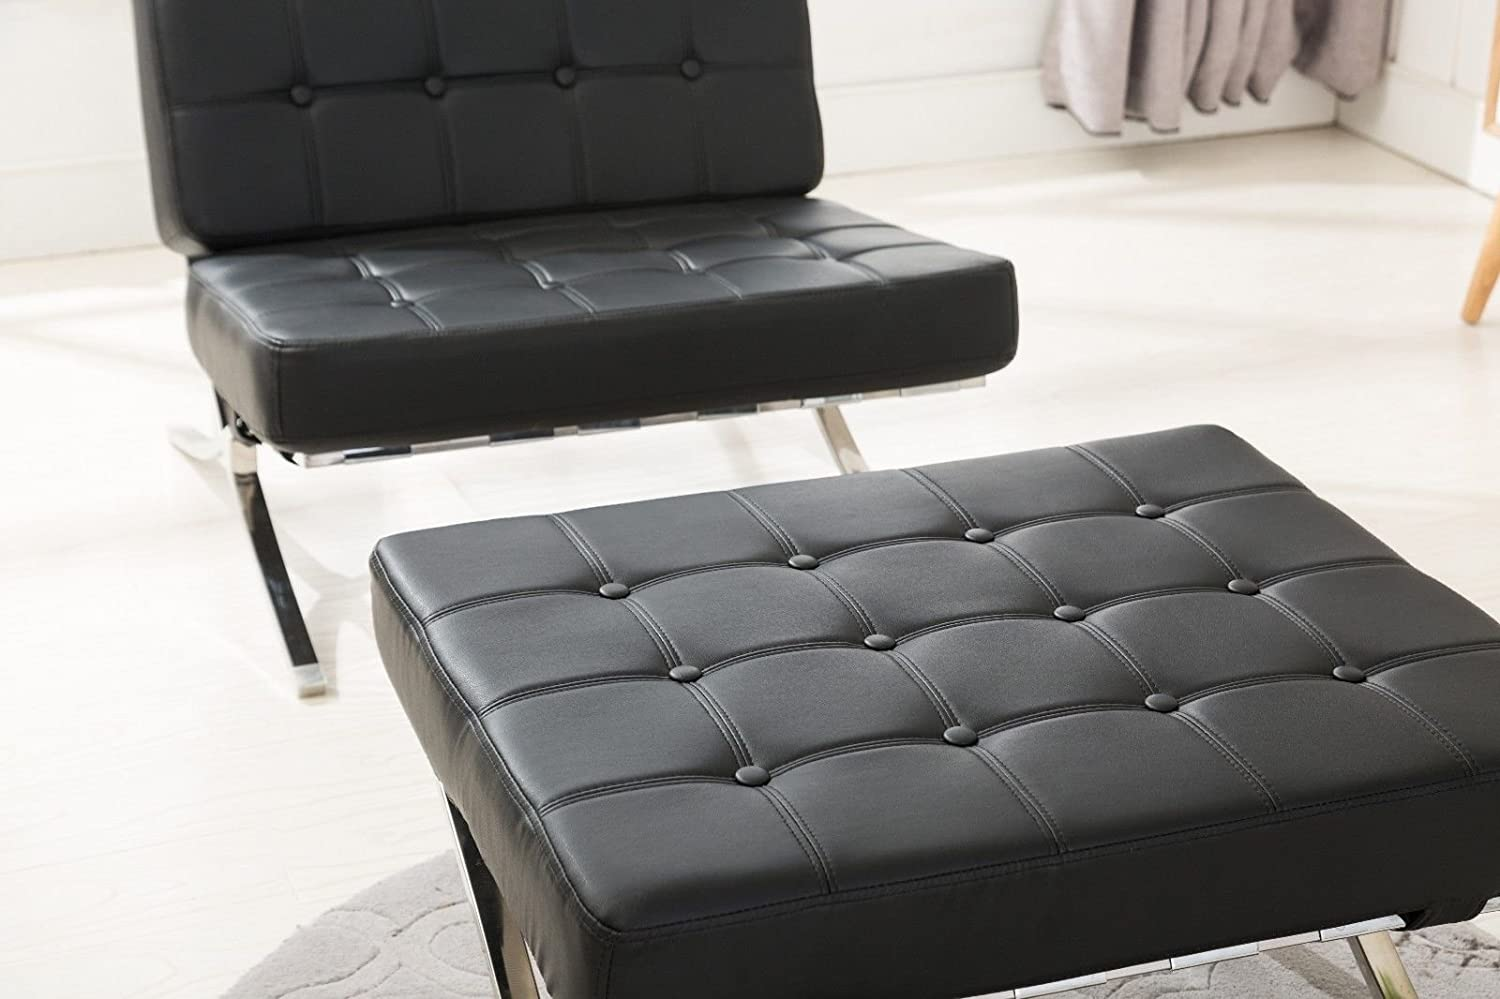 Stupendous Mcombo Balcony Barcelona Style Lounge Chair And Ottoman Faux Leather High Density Soft Foam Cushionsseamless Visible Corners Black One Ottoman Machost Co Dining Chair Design Ideas Machostcouk